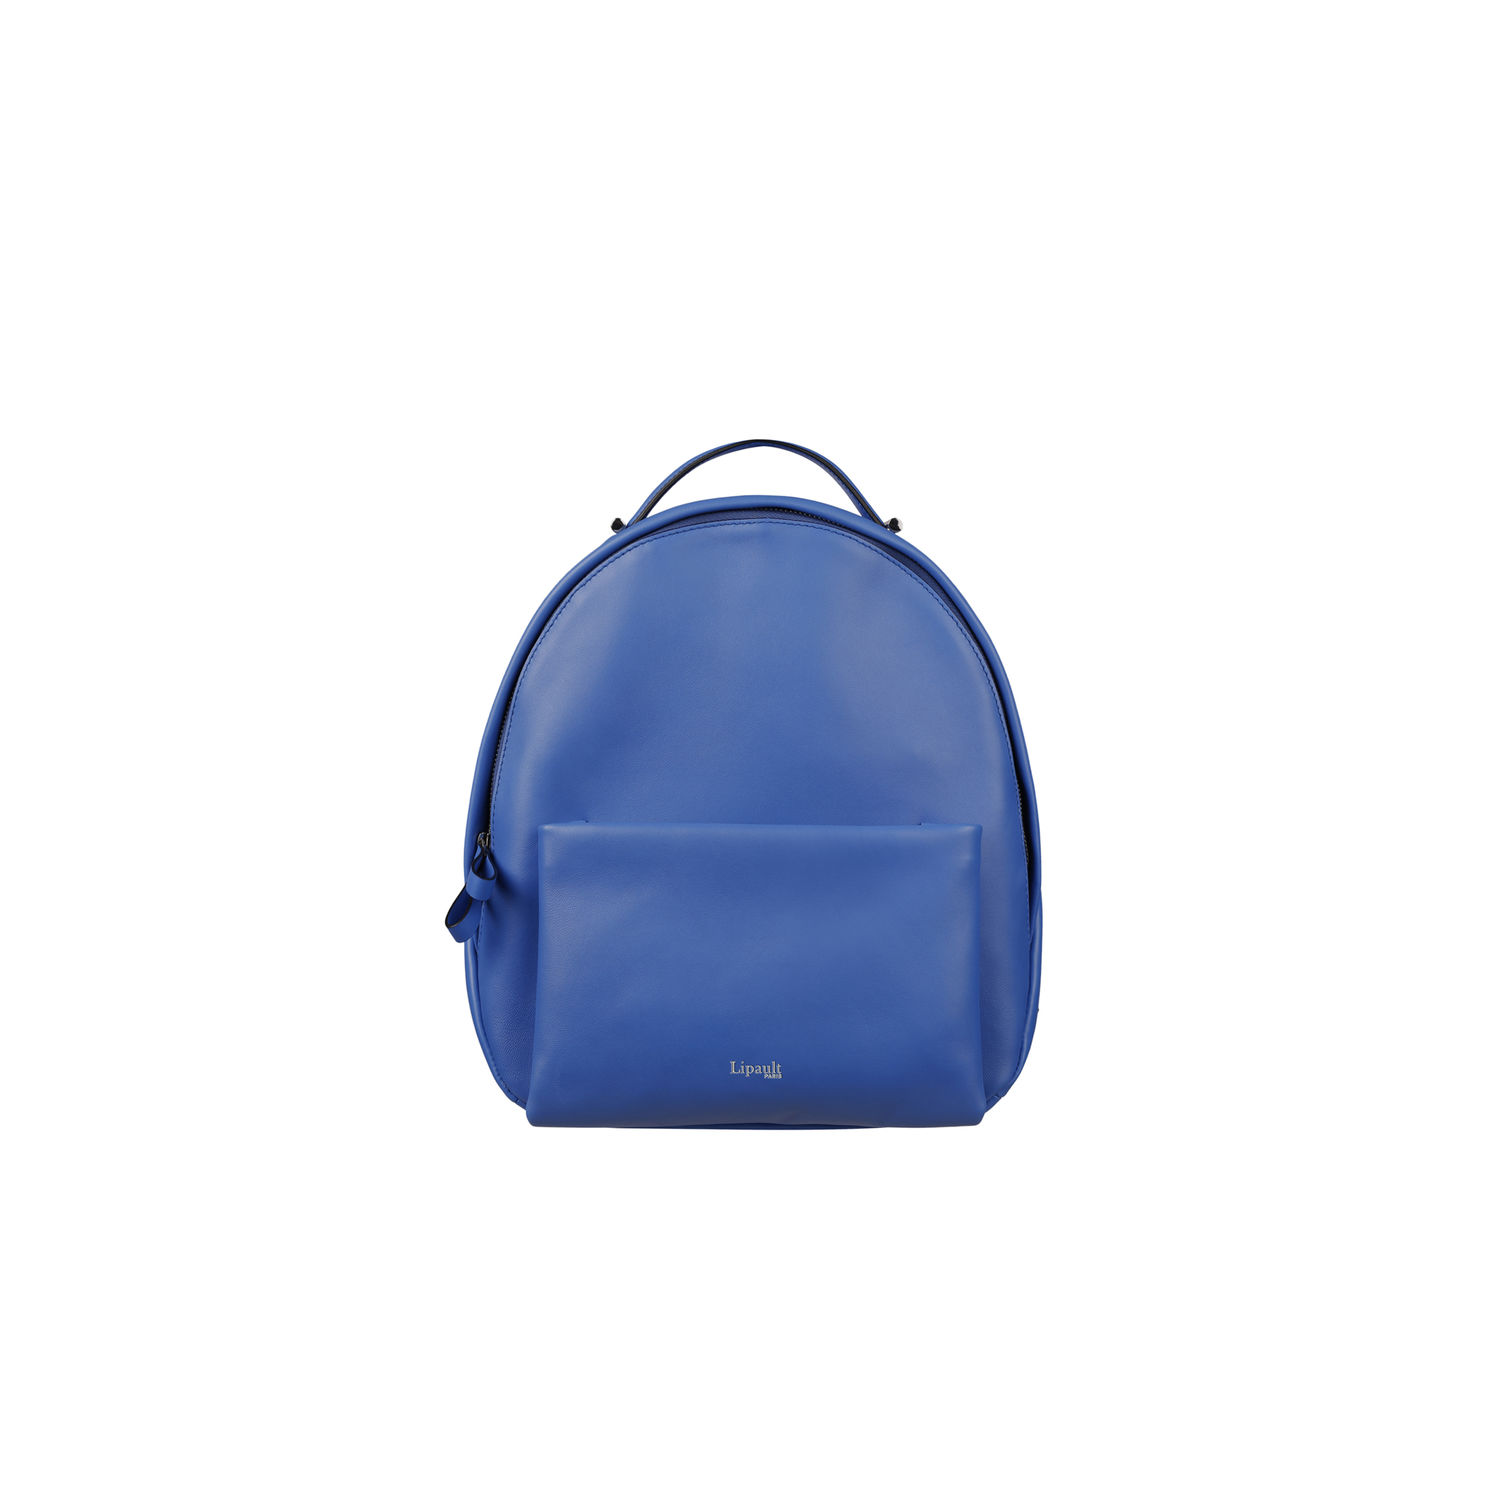 Shop this backpack by clicking on the image or  HERE.